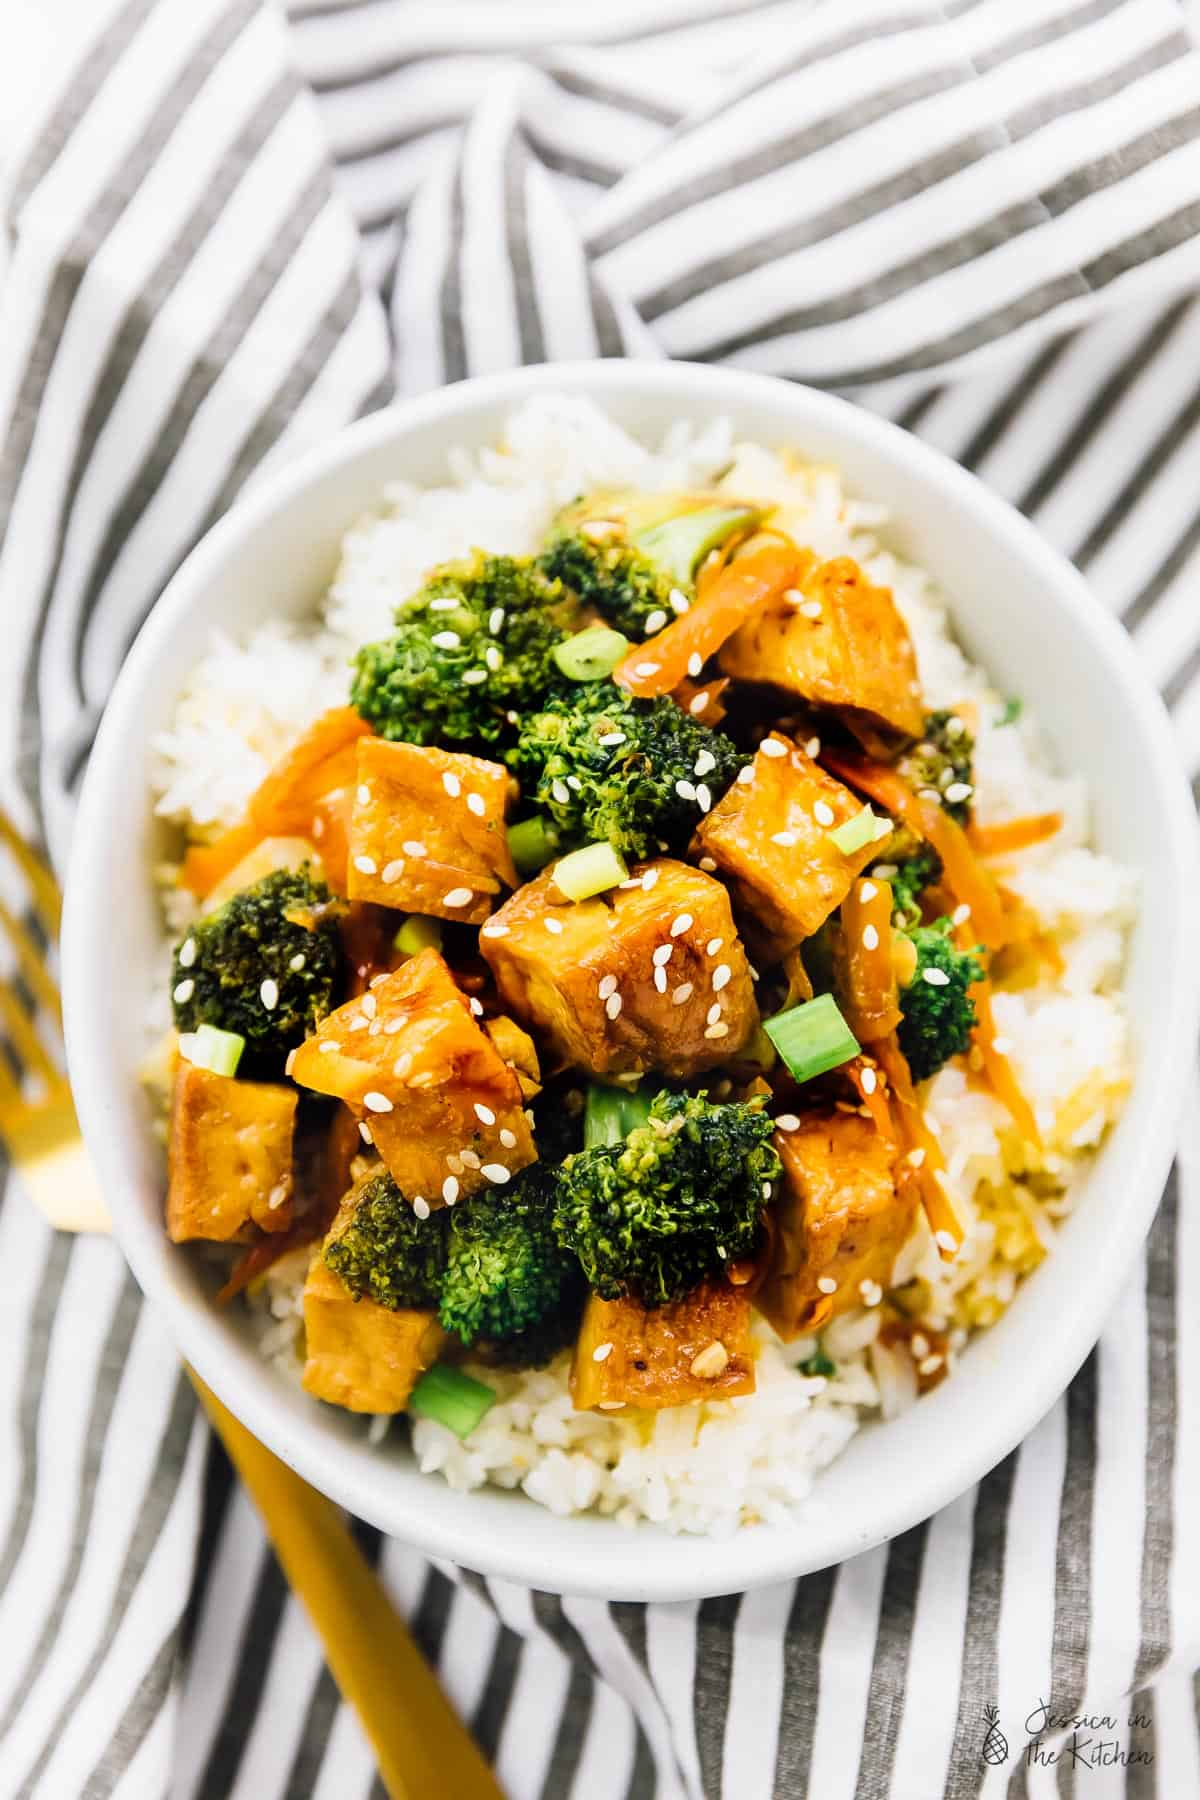 This Tofu and Veggie Stir Fry in Sweet Ginger Sauce is perfect for a weeknight meal! It's great for meal prep and a crowd pleaser! via https://jessicainthekitchen.com